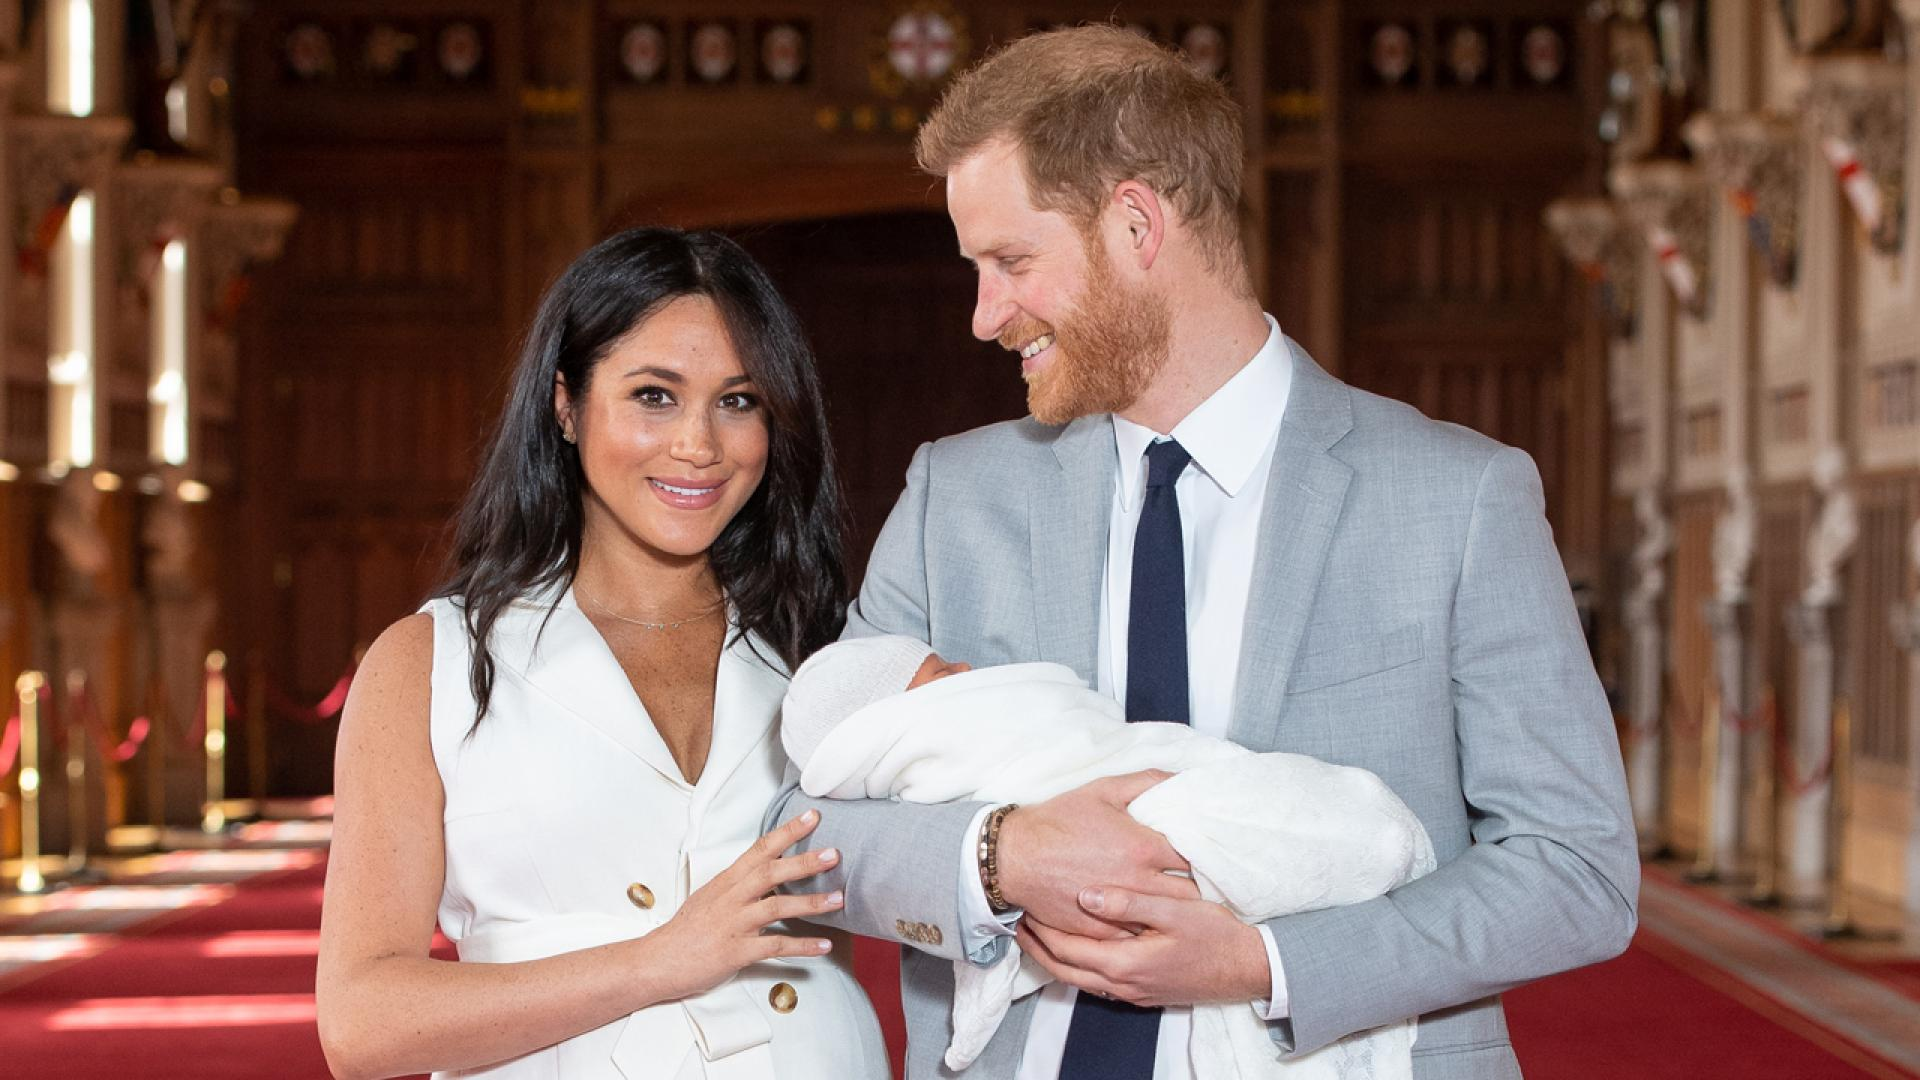 Meghan and Harry introduce baby Archie Harrison to the world